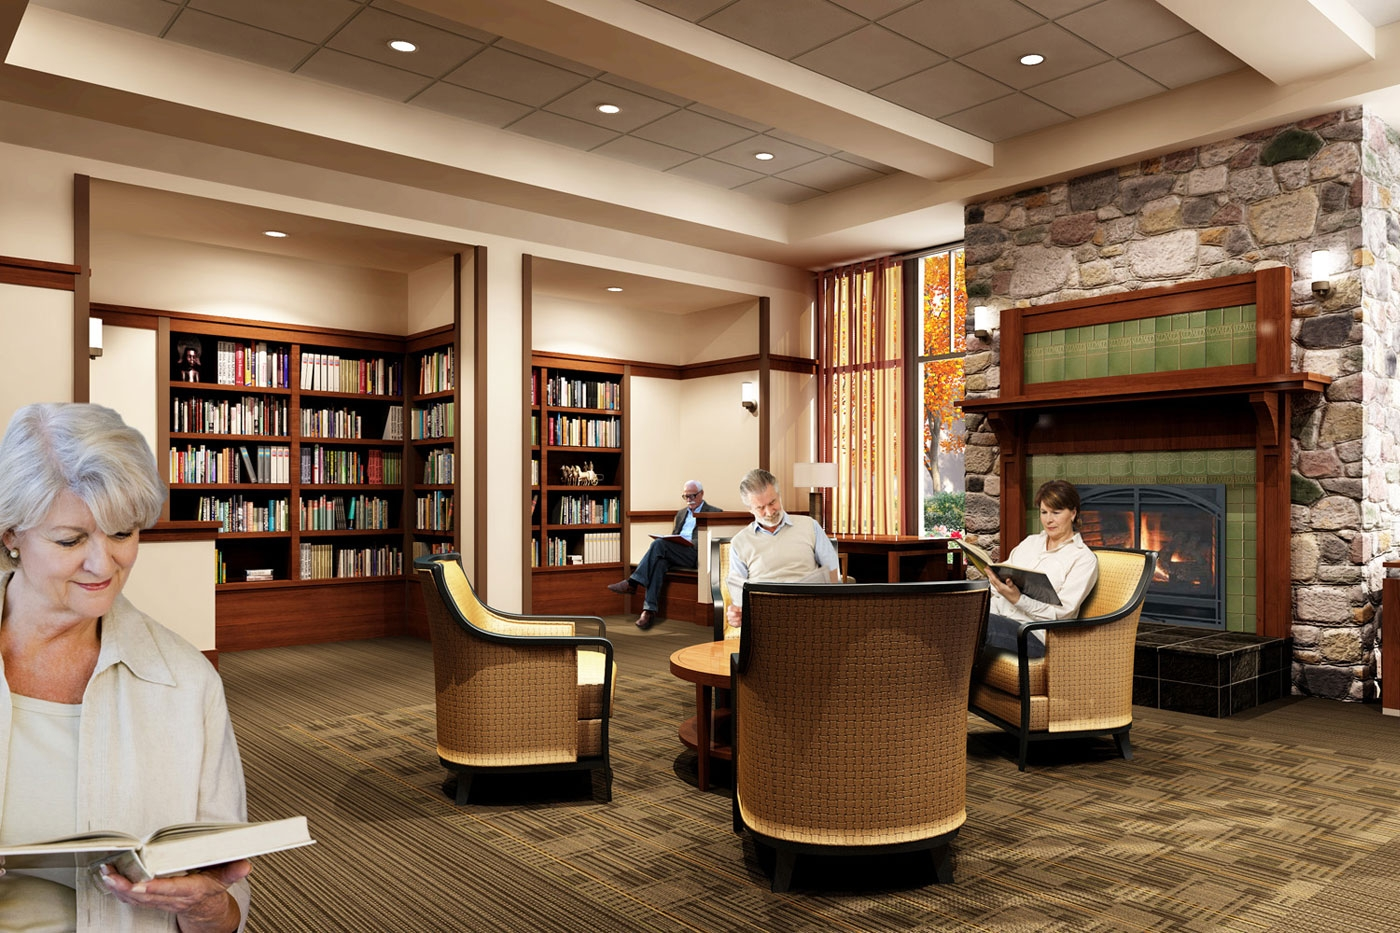 WDC designers created this spacious library in an independent living/assisted living community